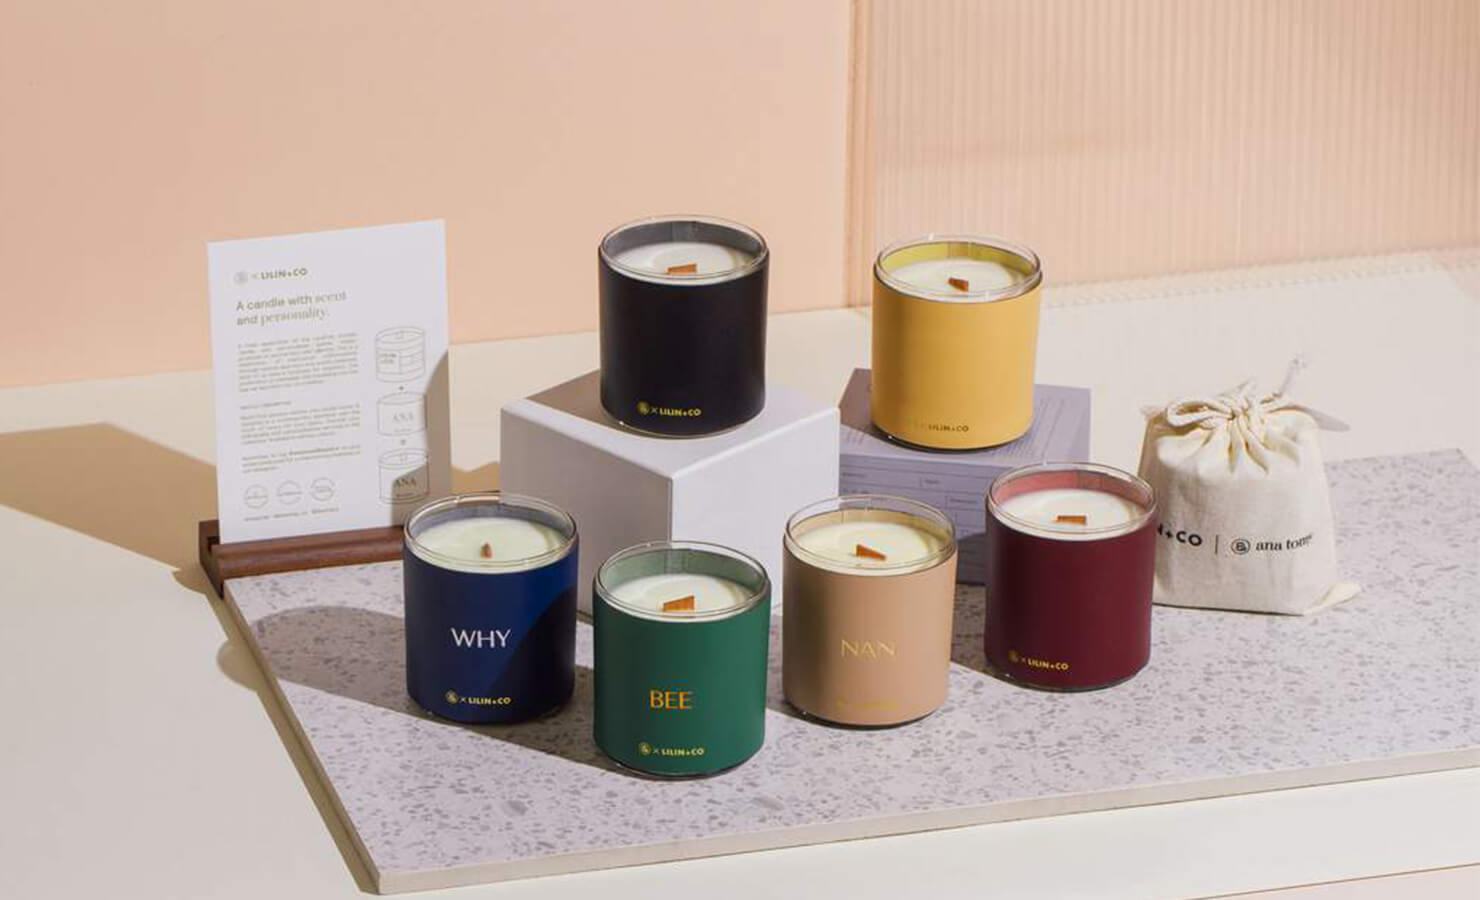 bloomthis-mid-autumn-festival-gift-guide-2021-06-lilin-co-candles